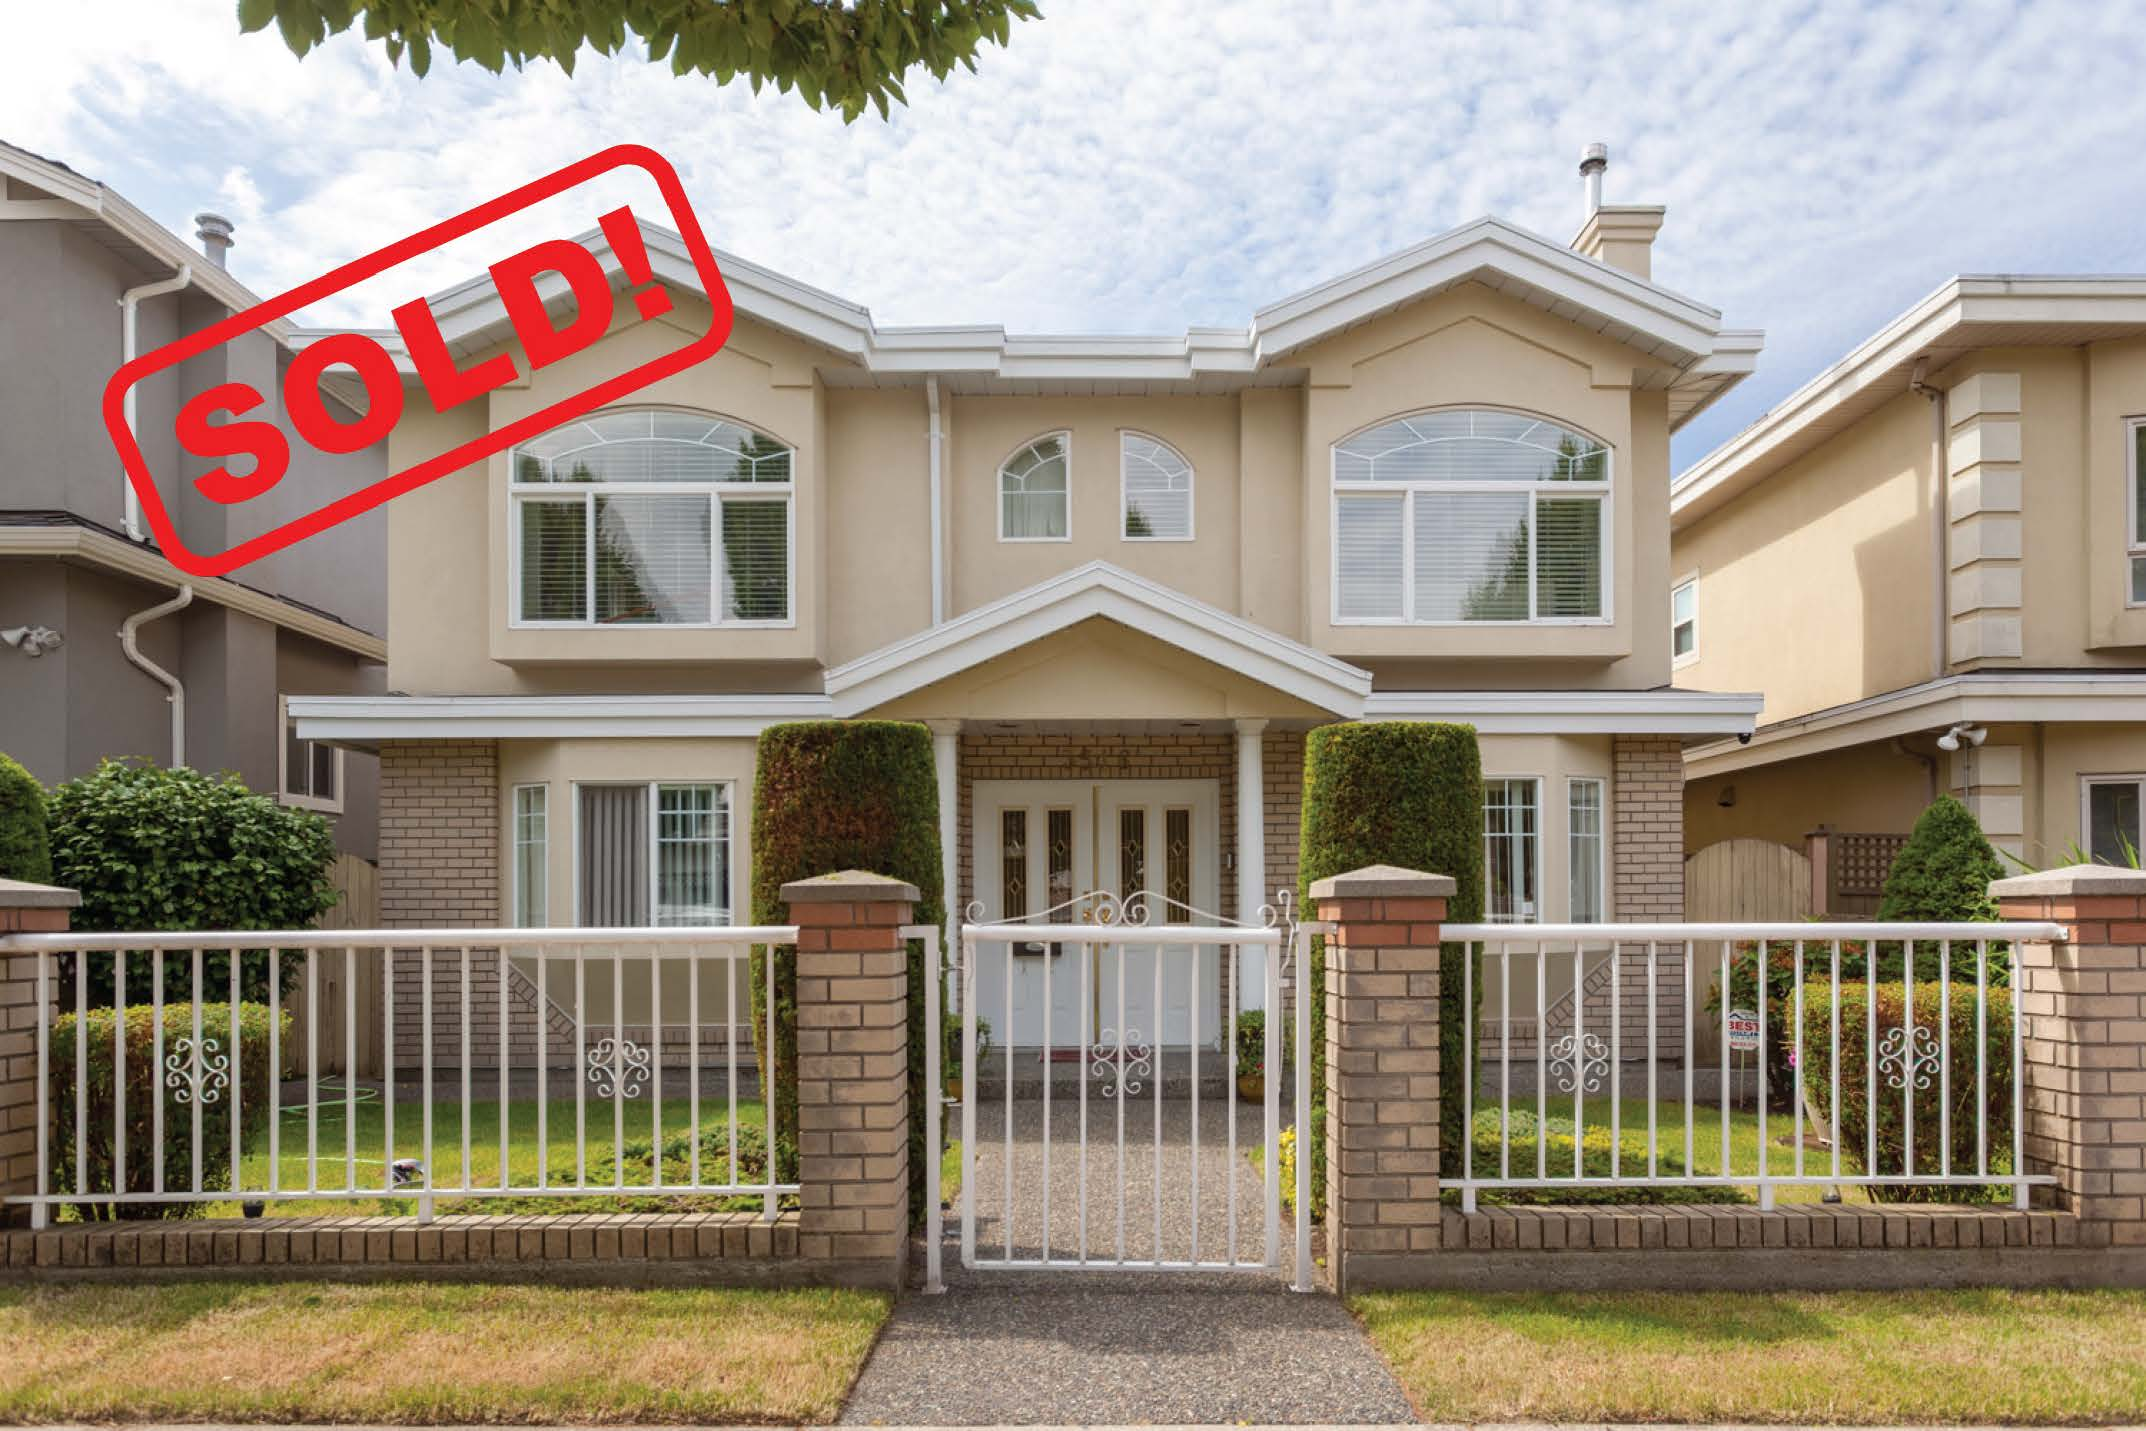 3516 PETERSHAM AVENUE     SOLD FOR: $1,630,000  6 BED | 4 BATH | 2,082 SF